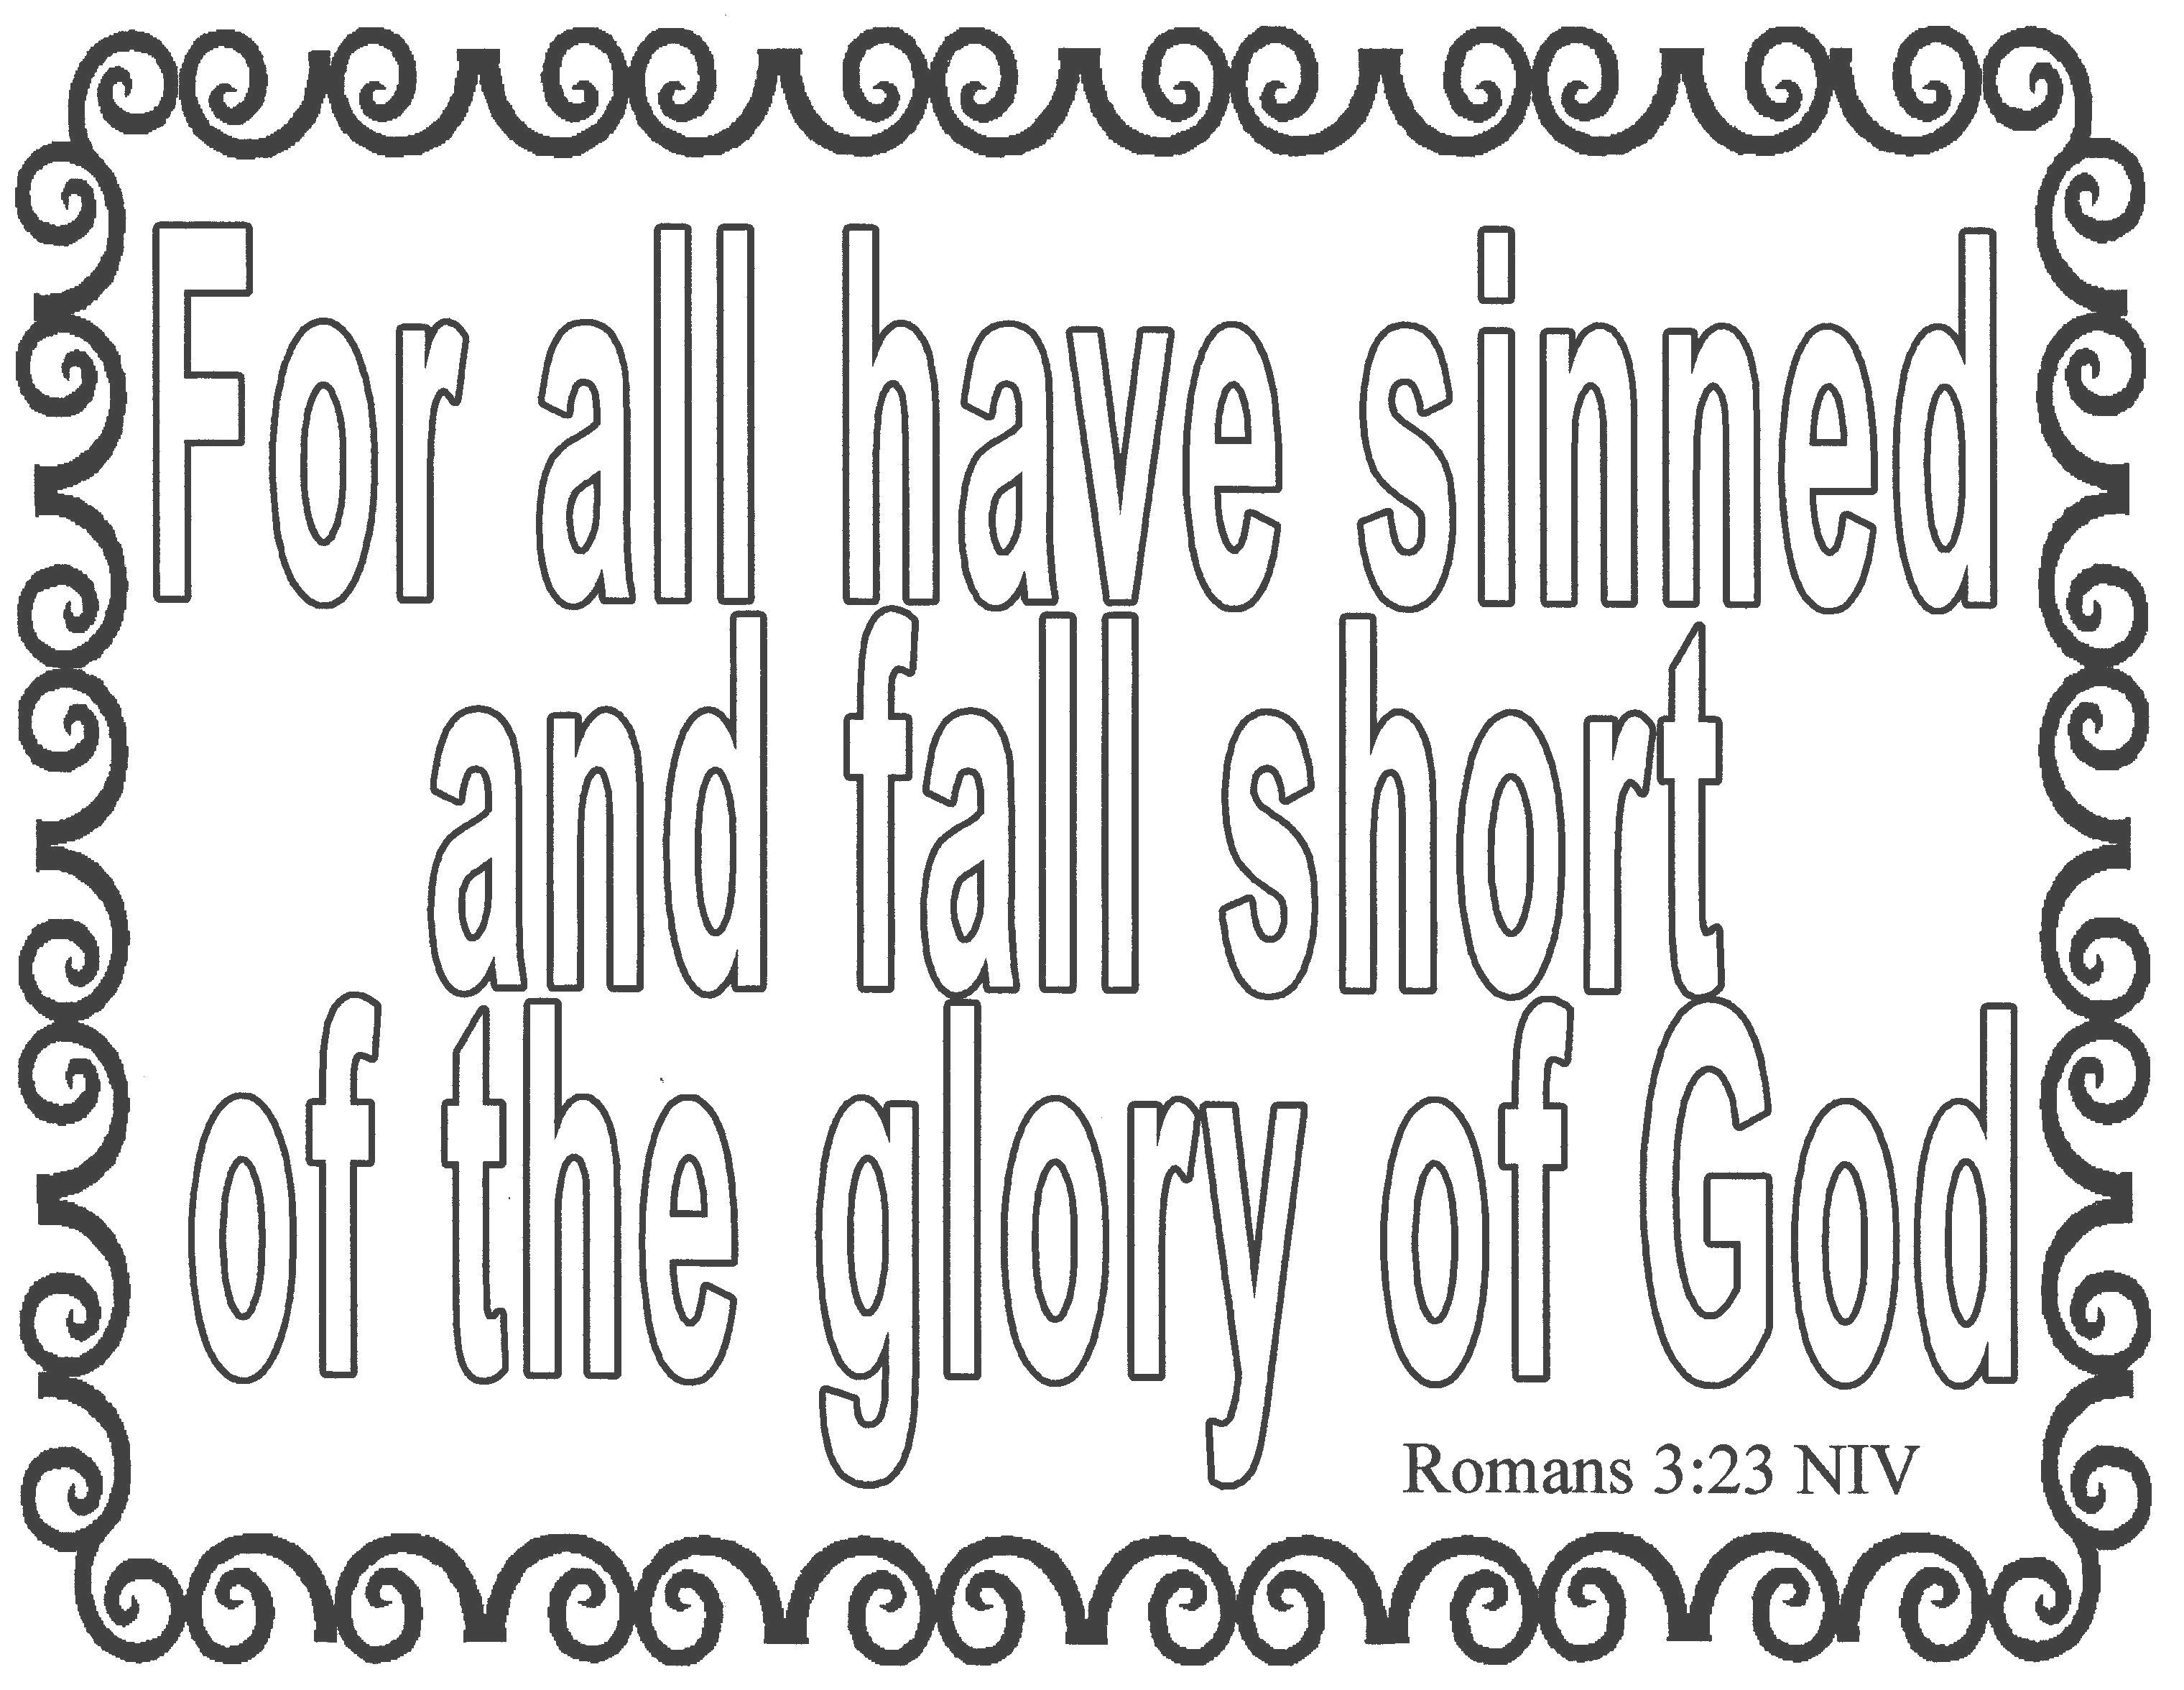 This verse can be printed in NIV or KJV of the Bible. Available at http://www.teacherhelp.org/color.htm